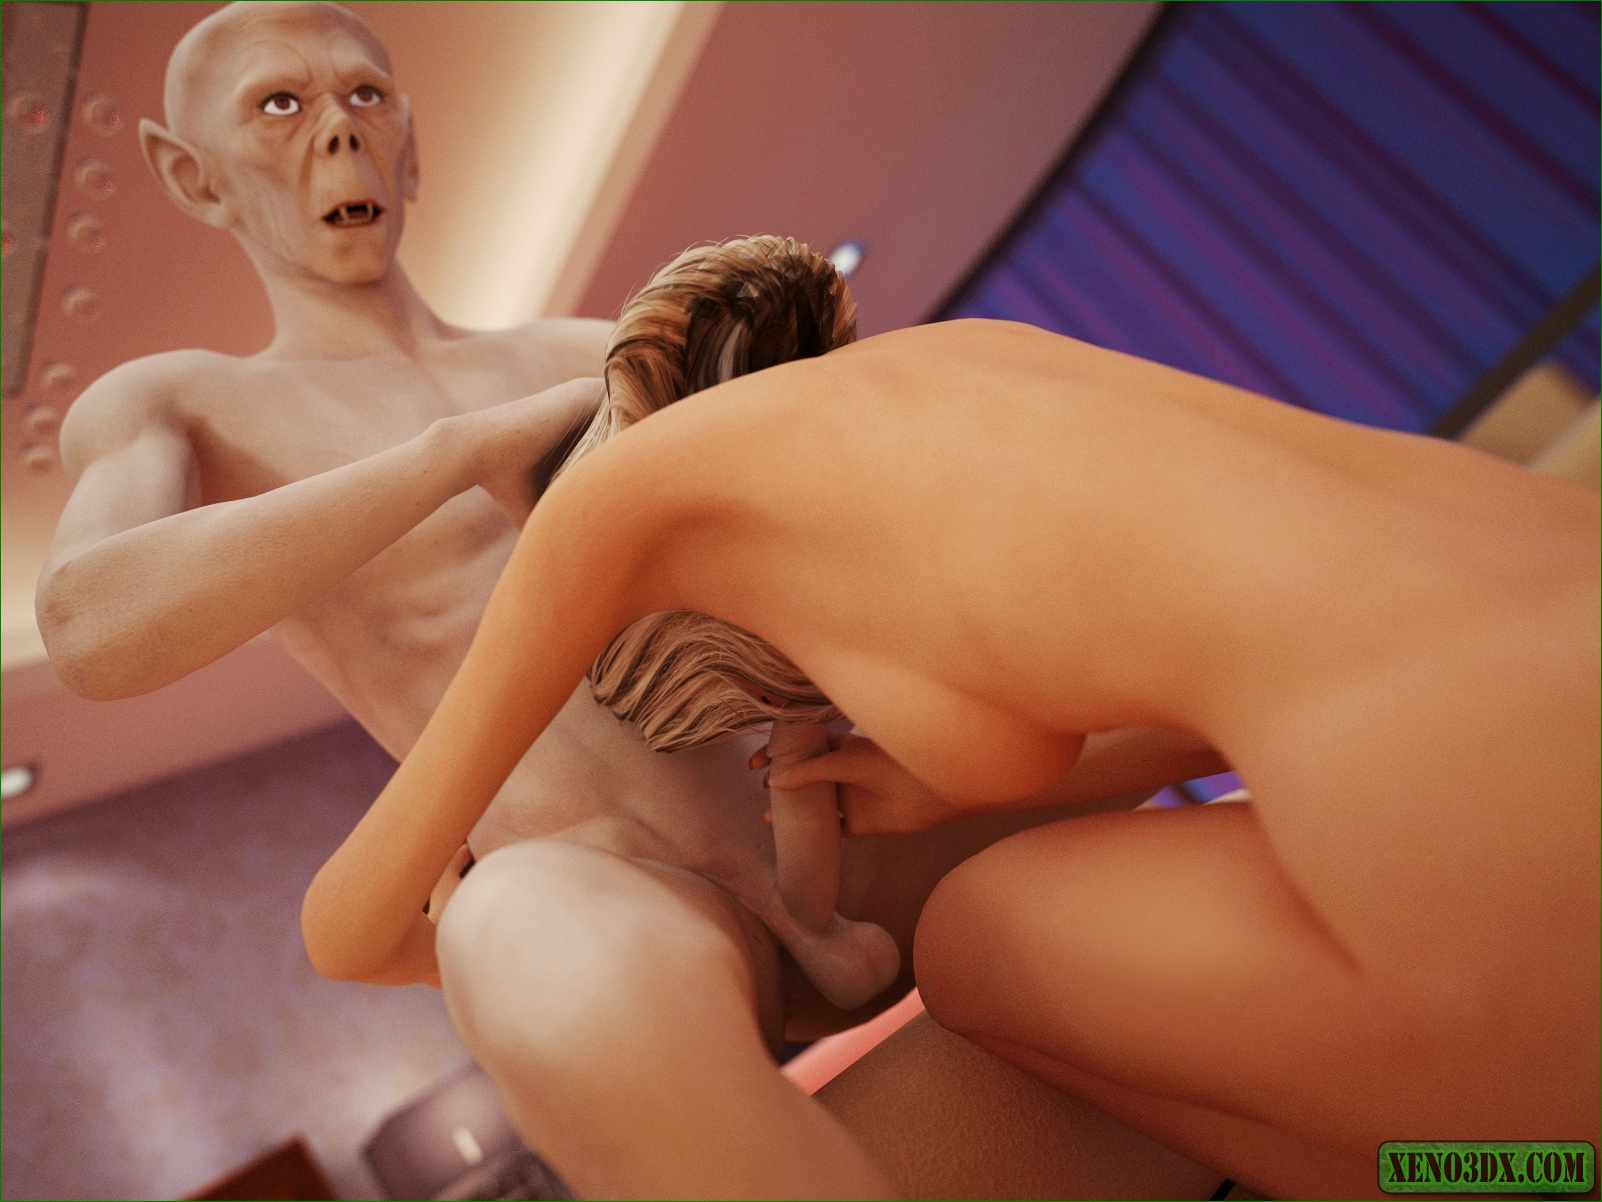 Nude girl fucking pic monster porncraft photo